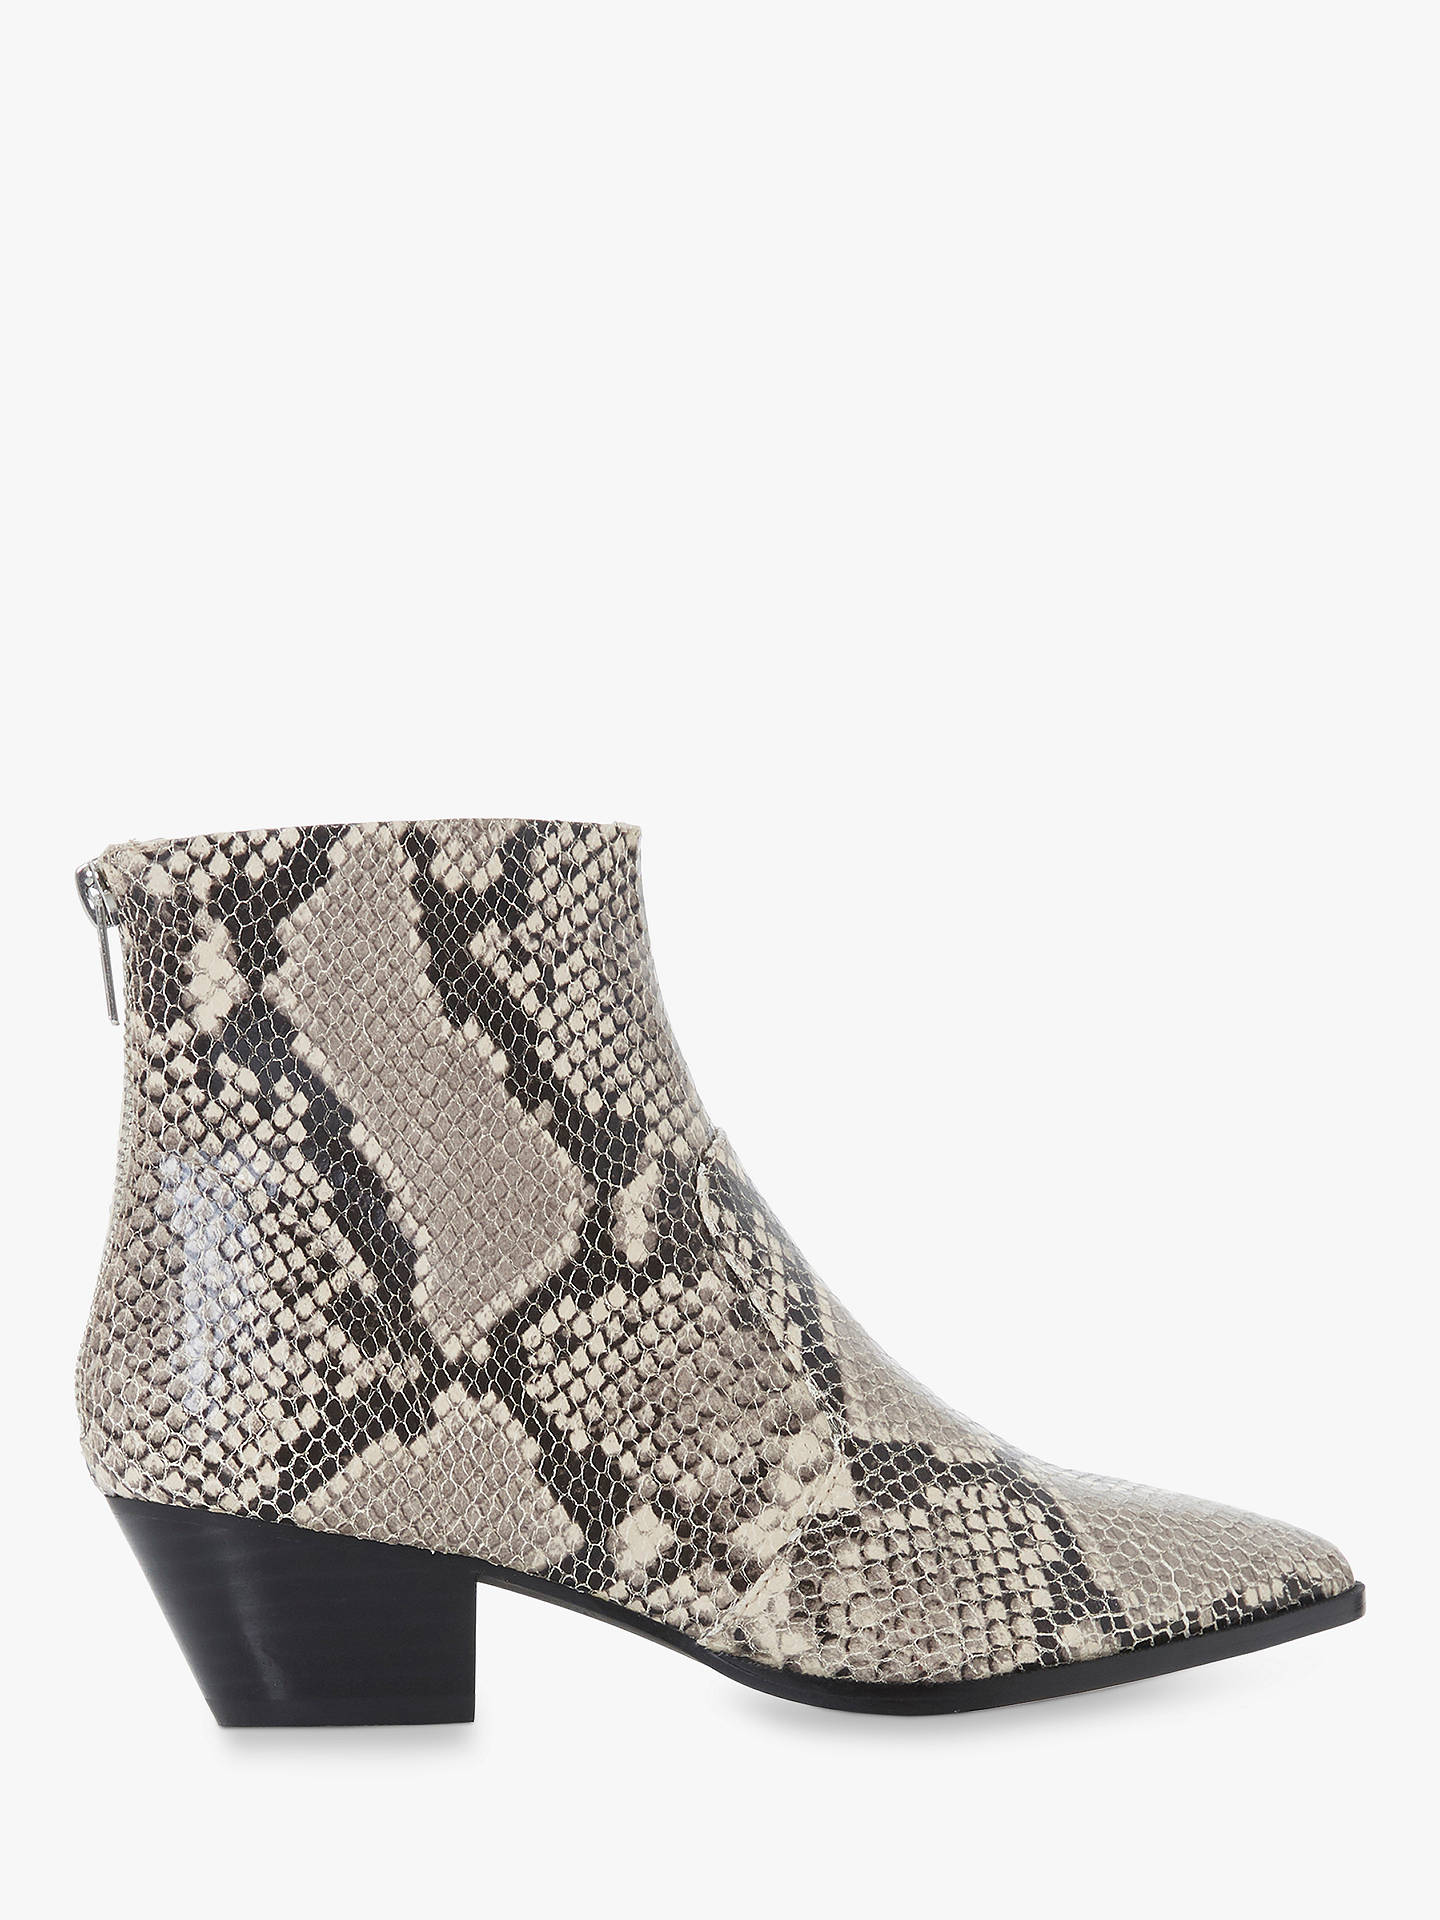 be187b5f300 Buy Steve Madden Cafe SM Ankle Boots